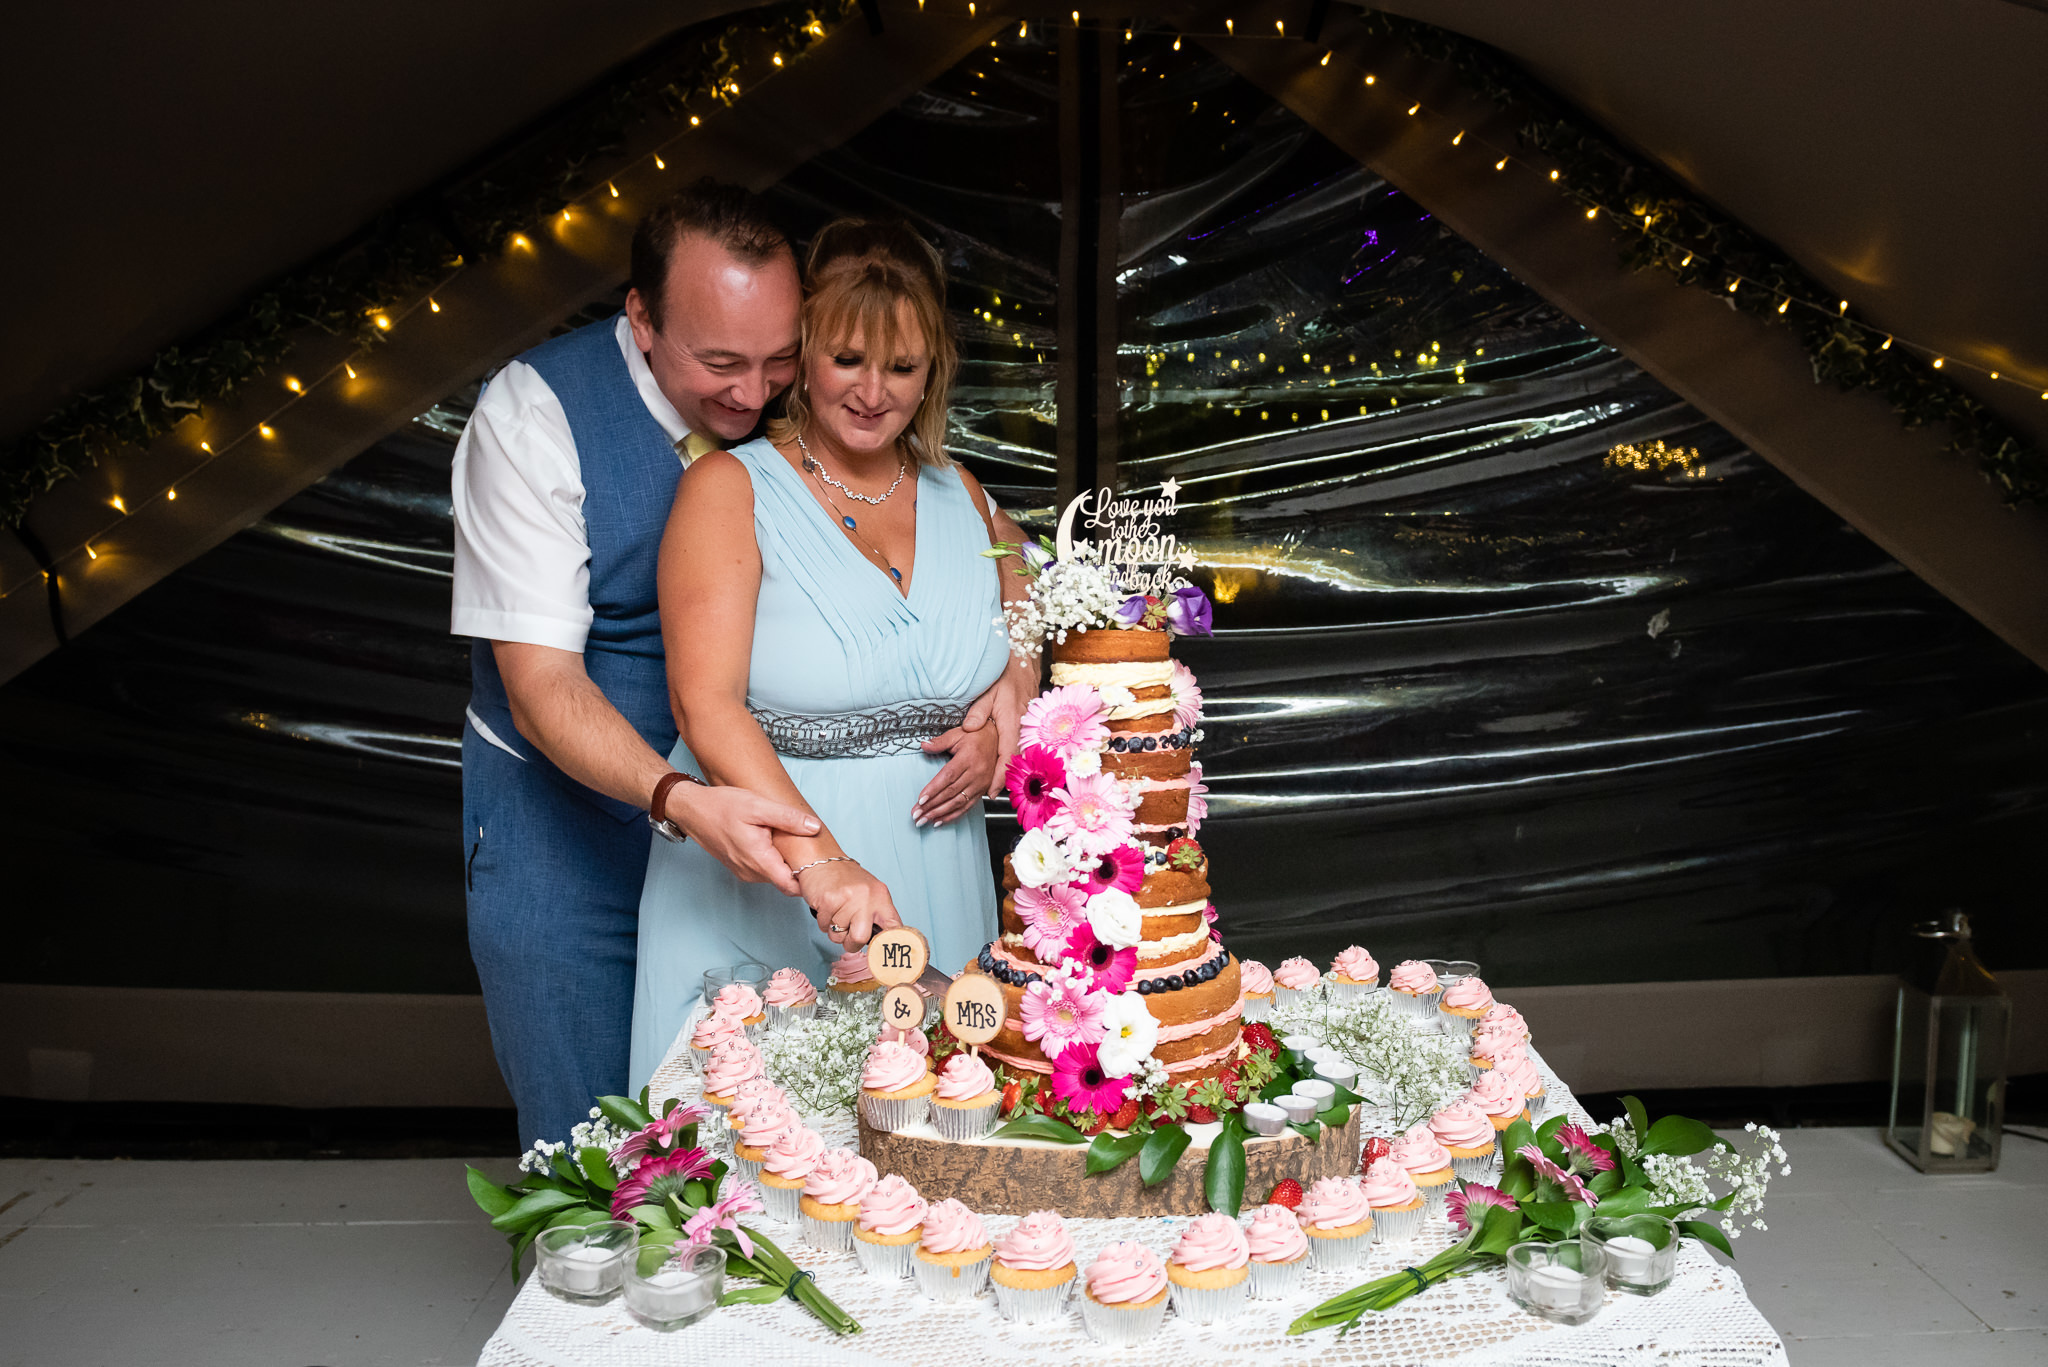 Mel and Neil cut their wedding cake